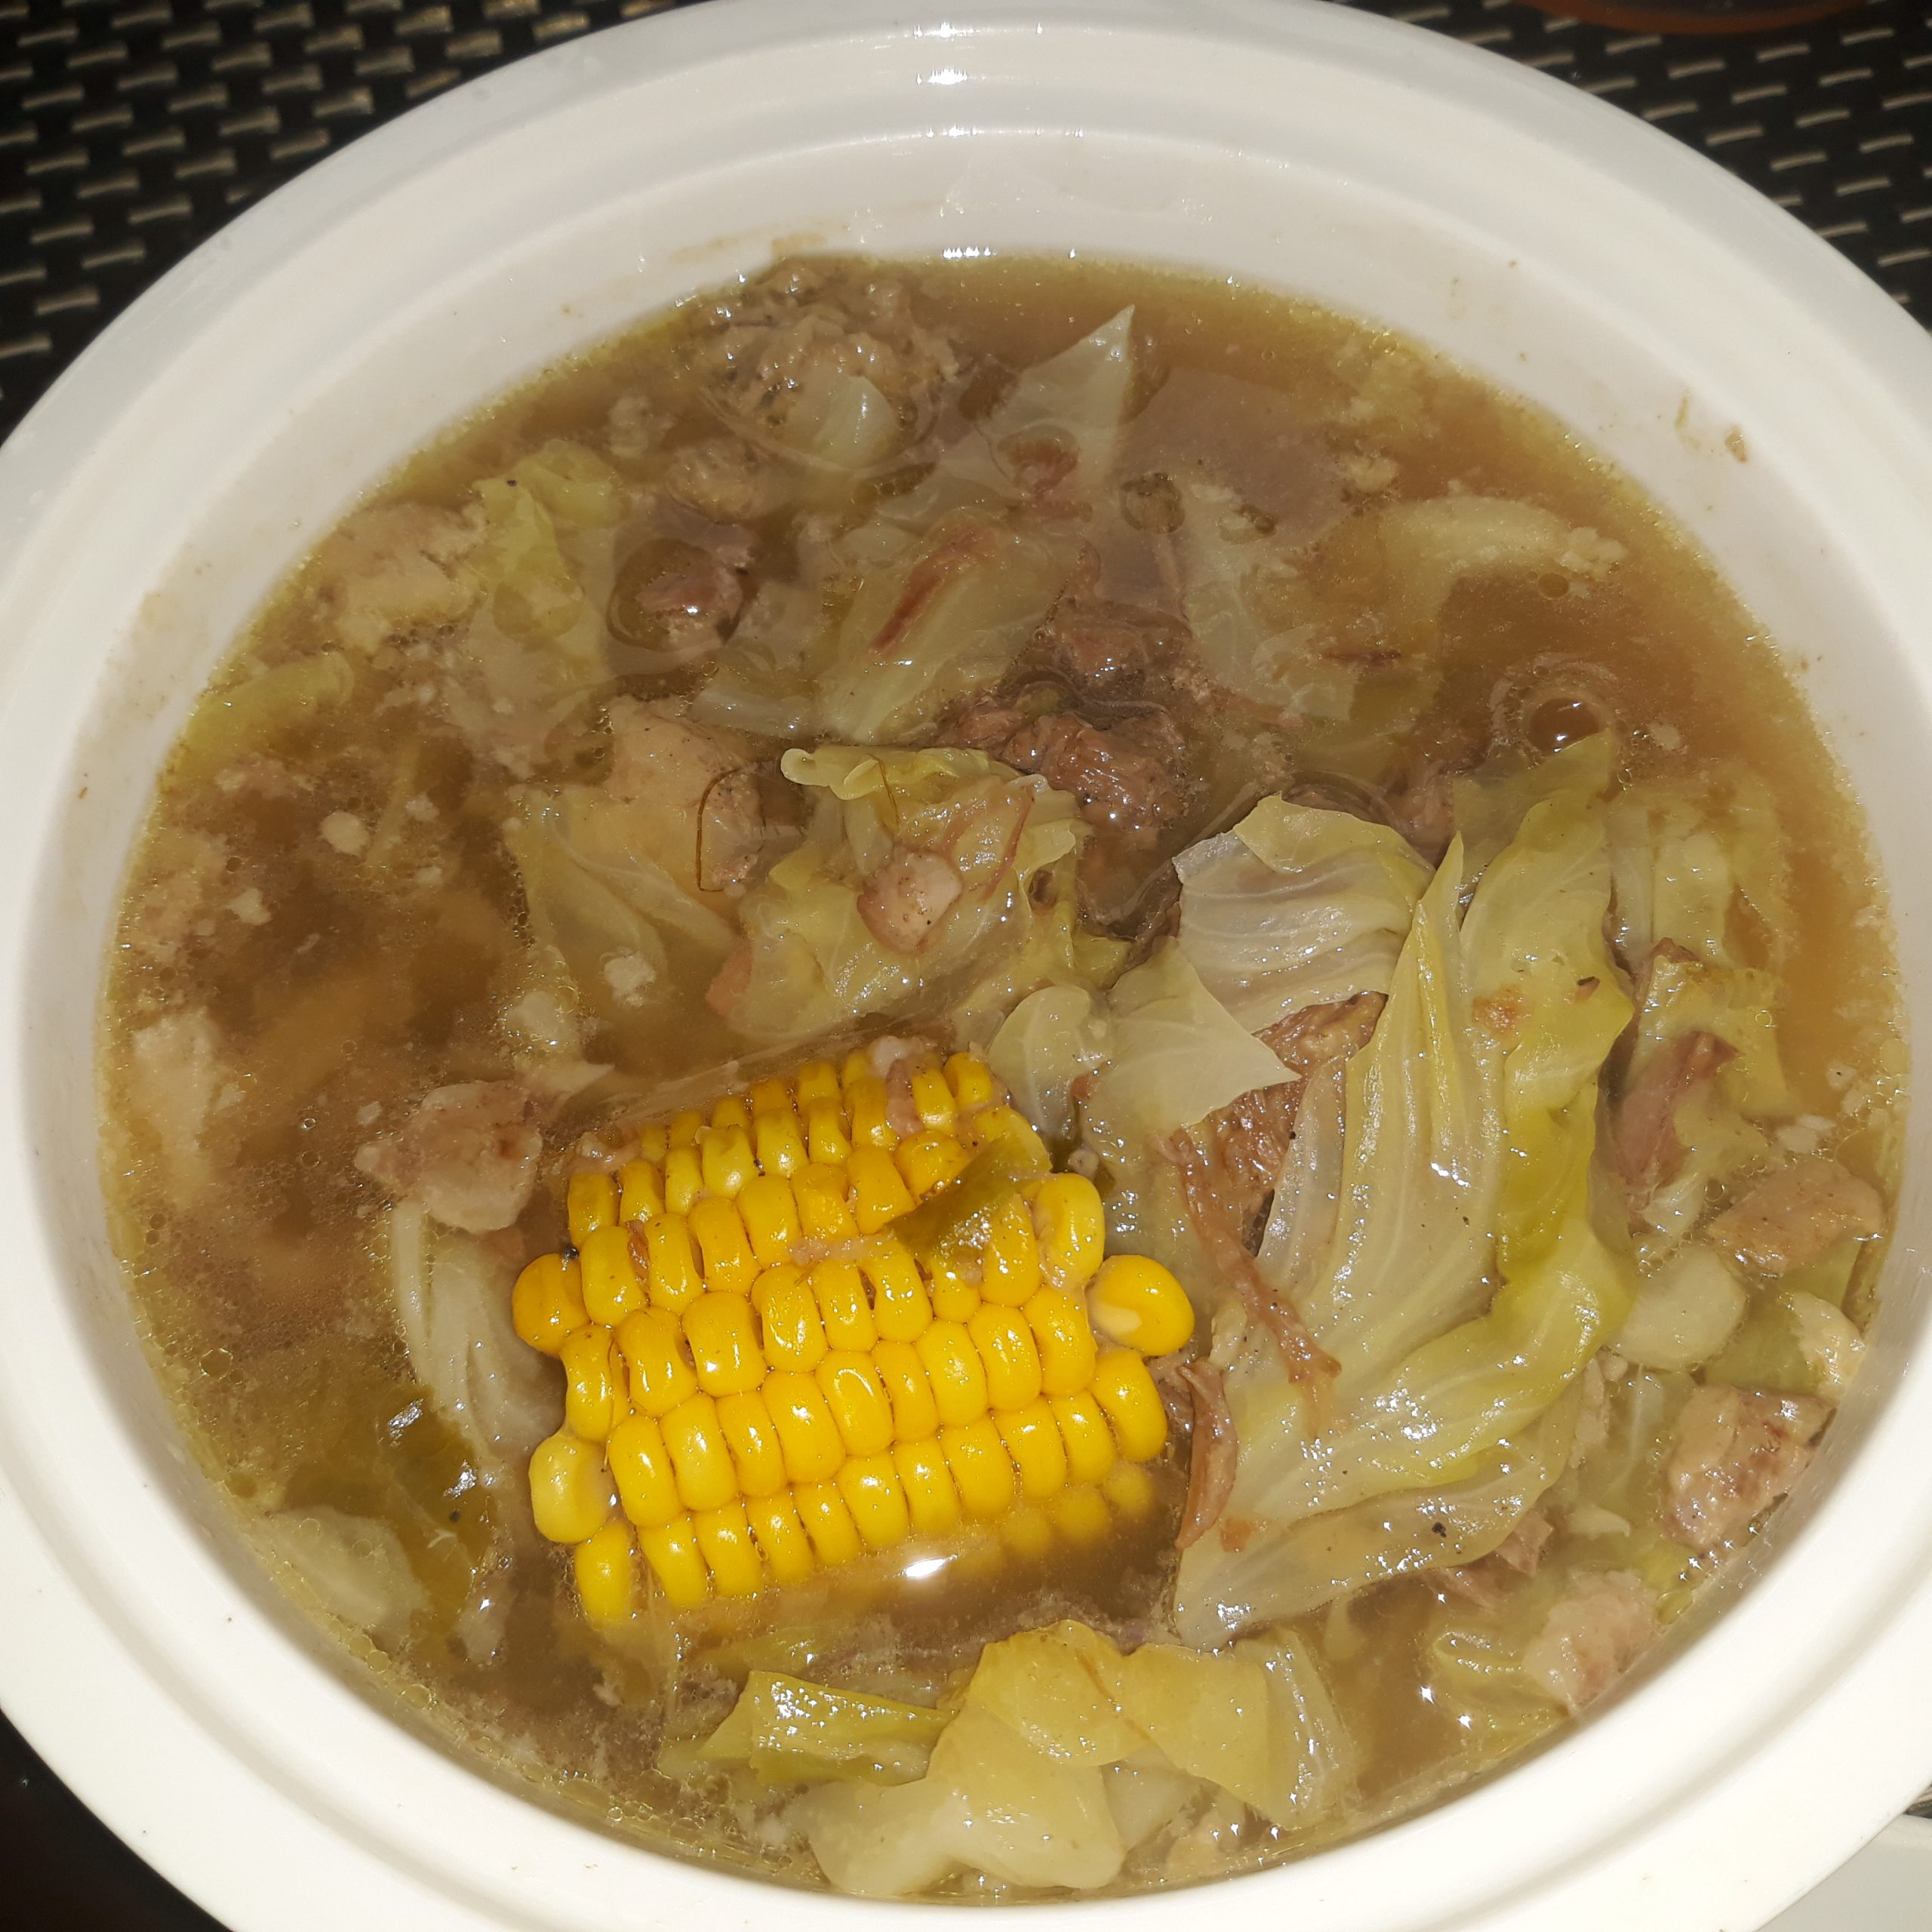 Left-over bulalo showing a piece of corn and shredded cabbage and meat in a white serving bowl.